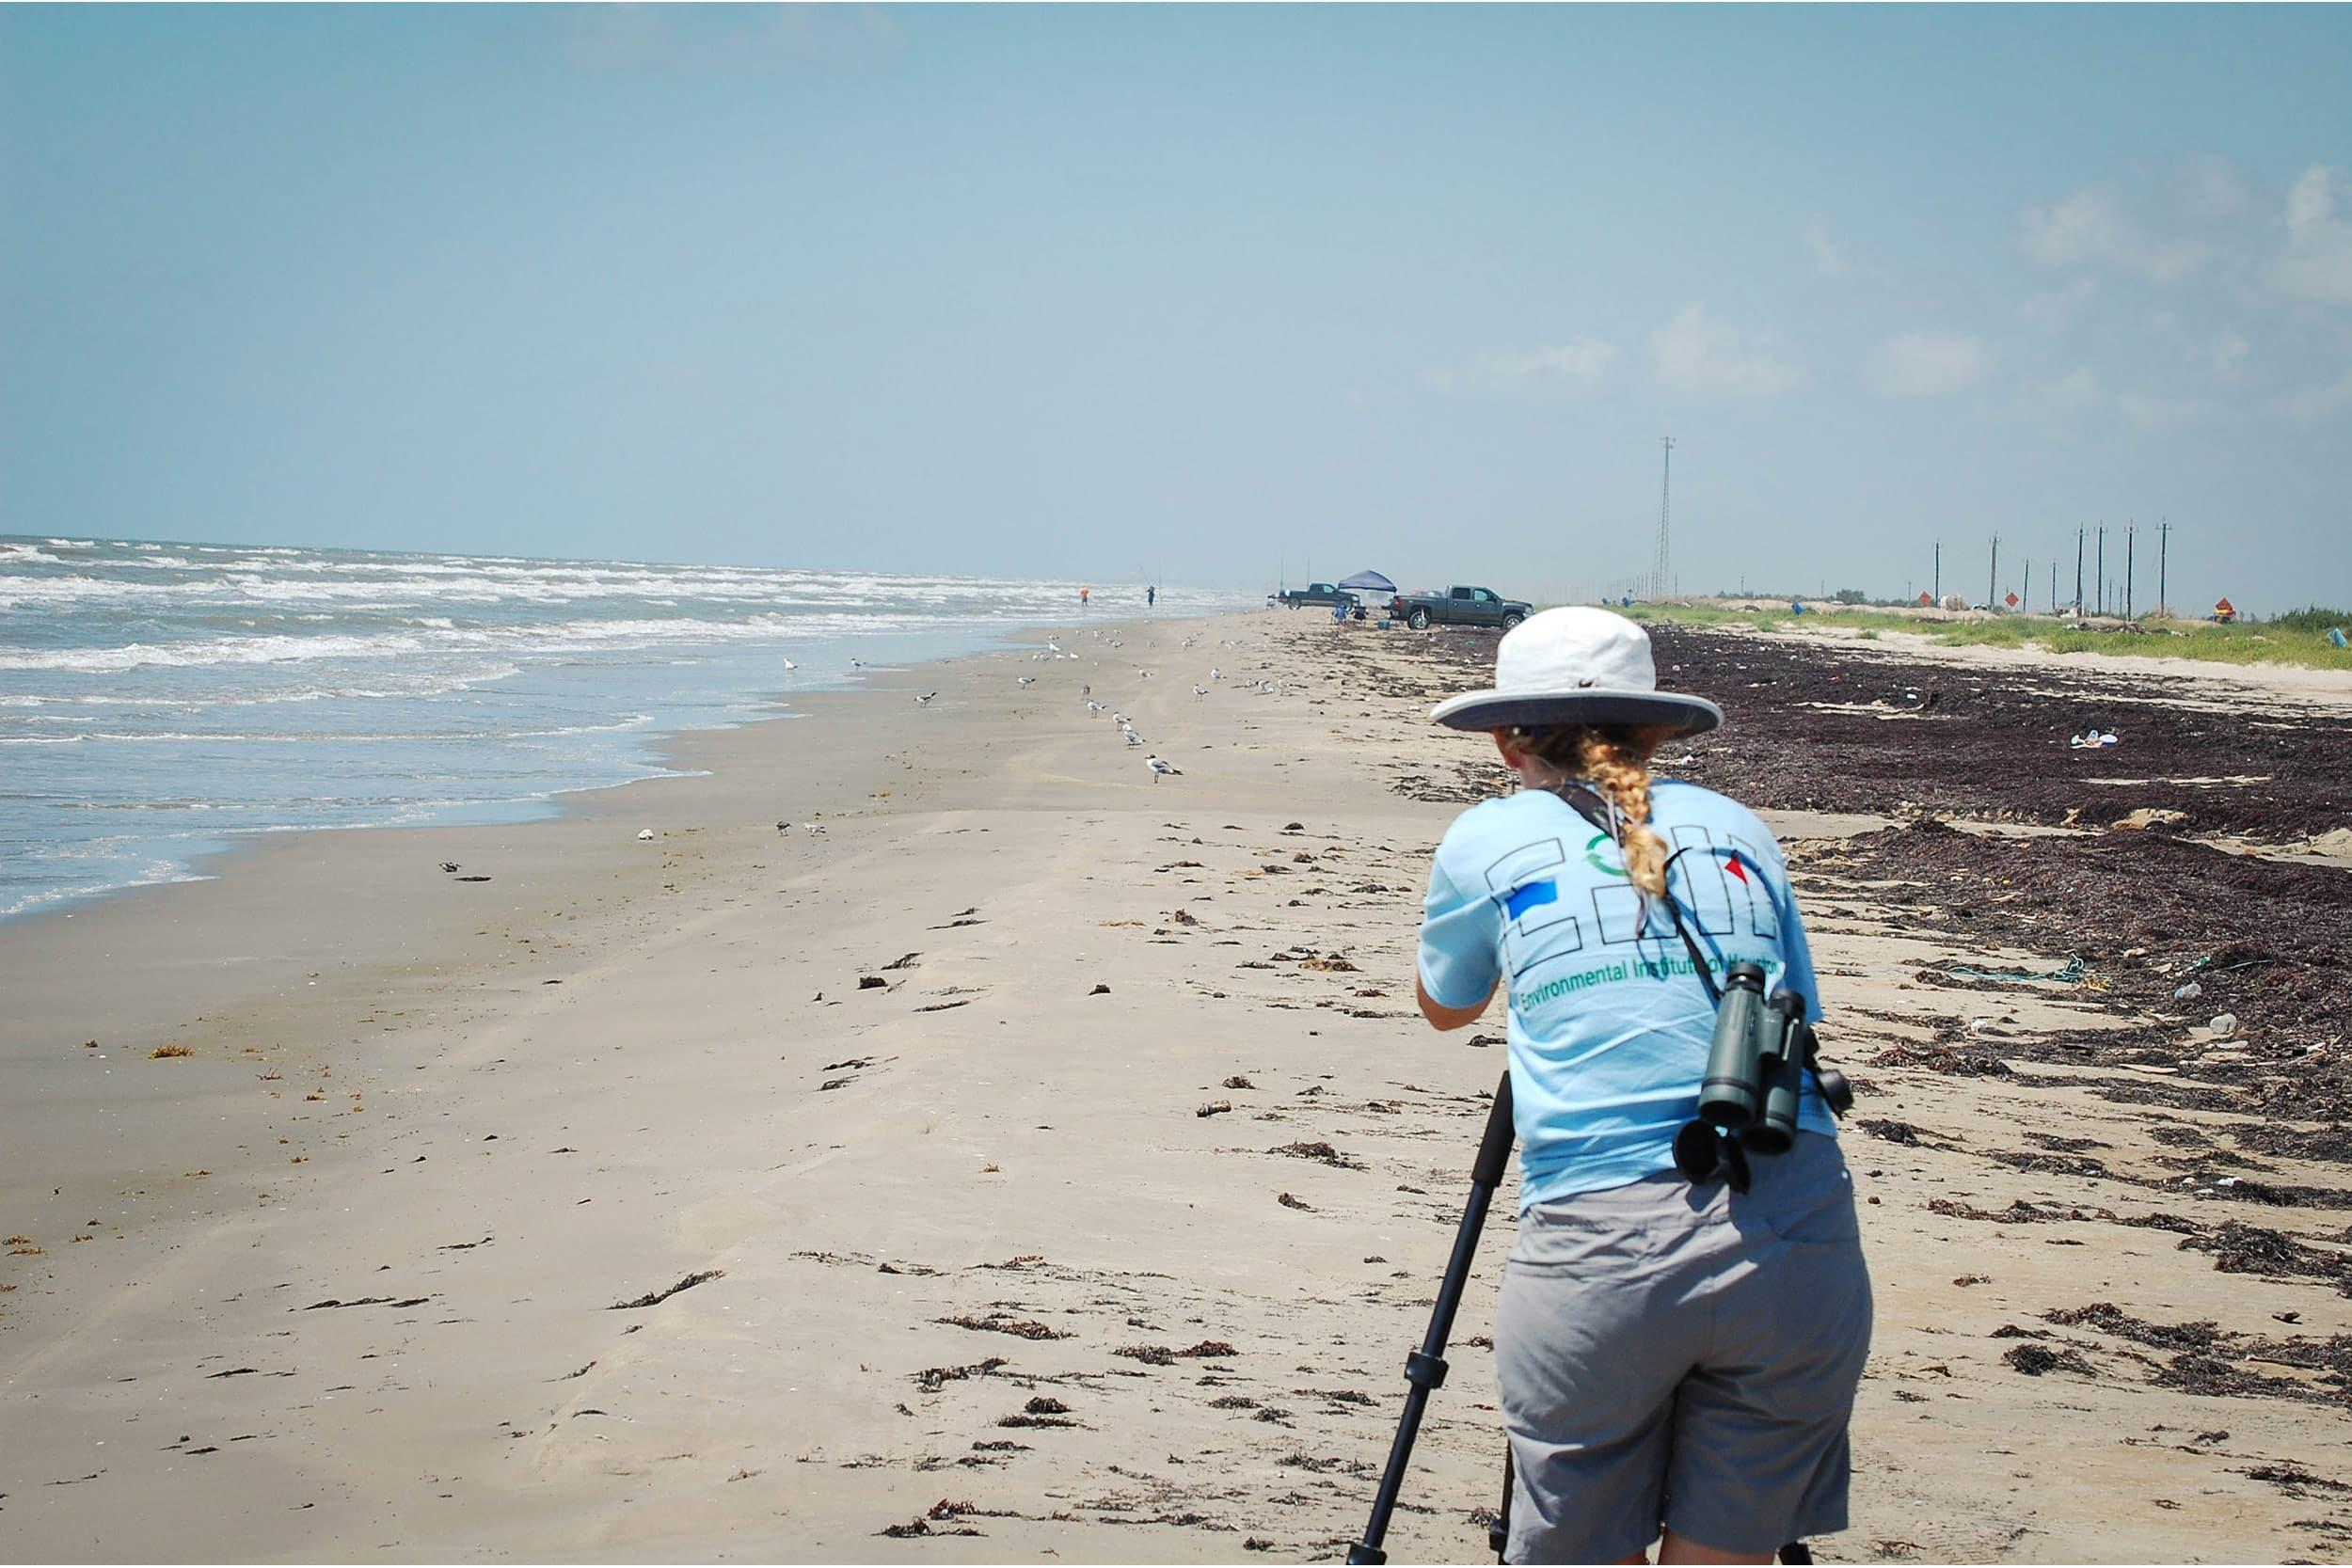 Kristen Vale, research associate, uses a scope to record data on a piping plovers on Follets Island.